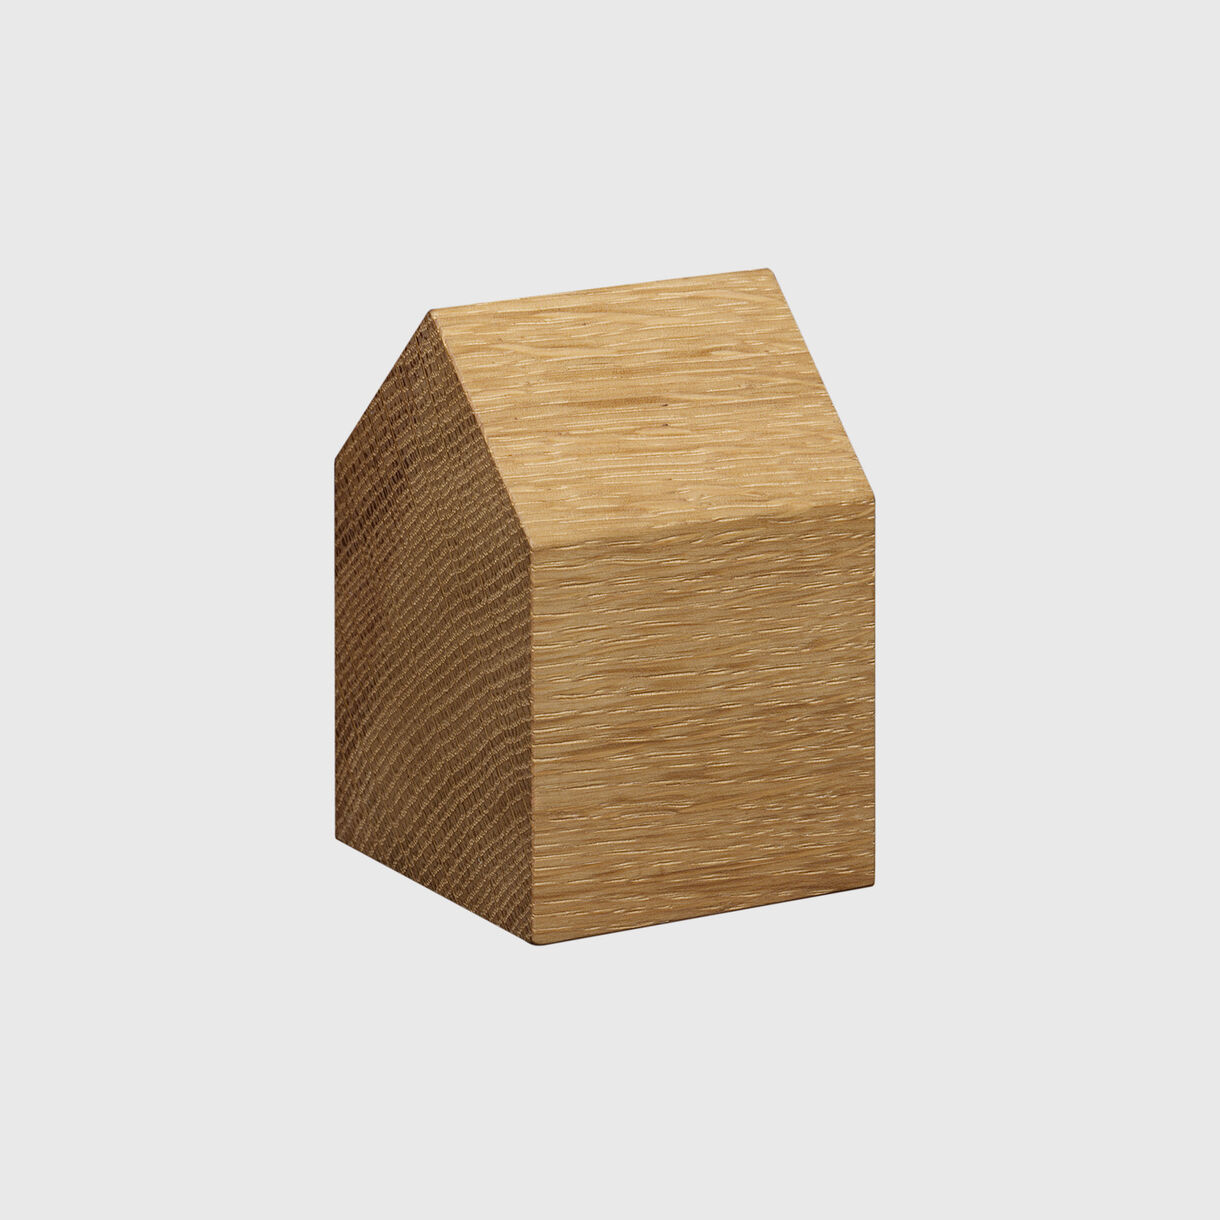 Haus Paper Weight, Saddle Small, European Oak